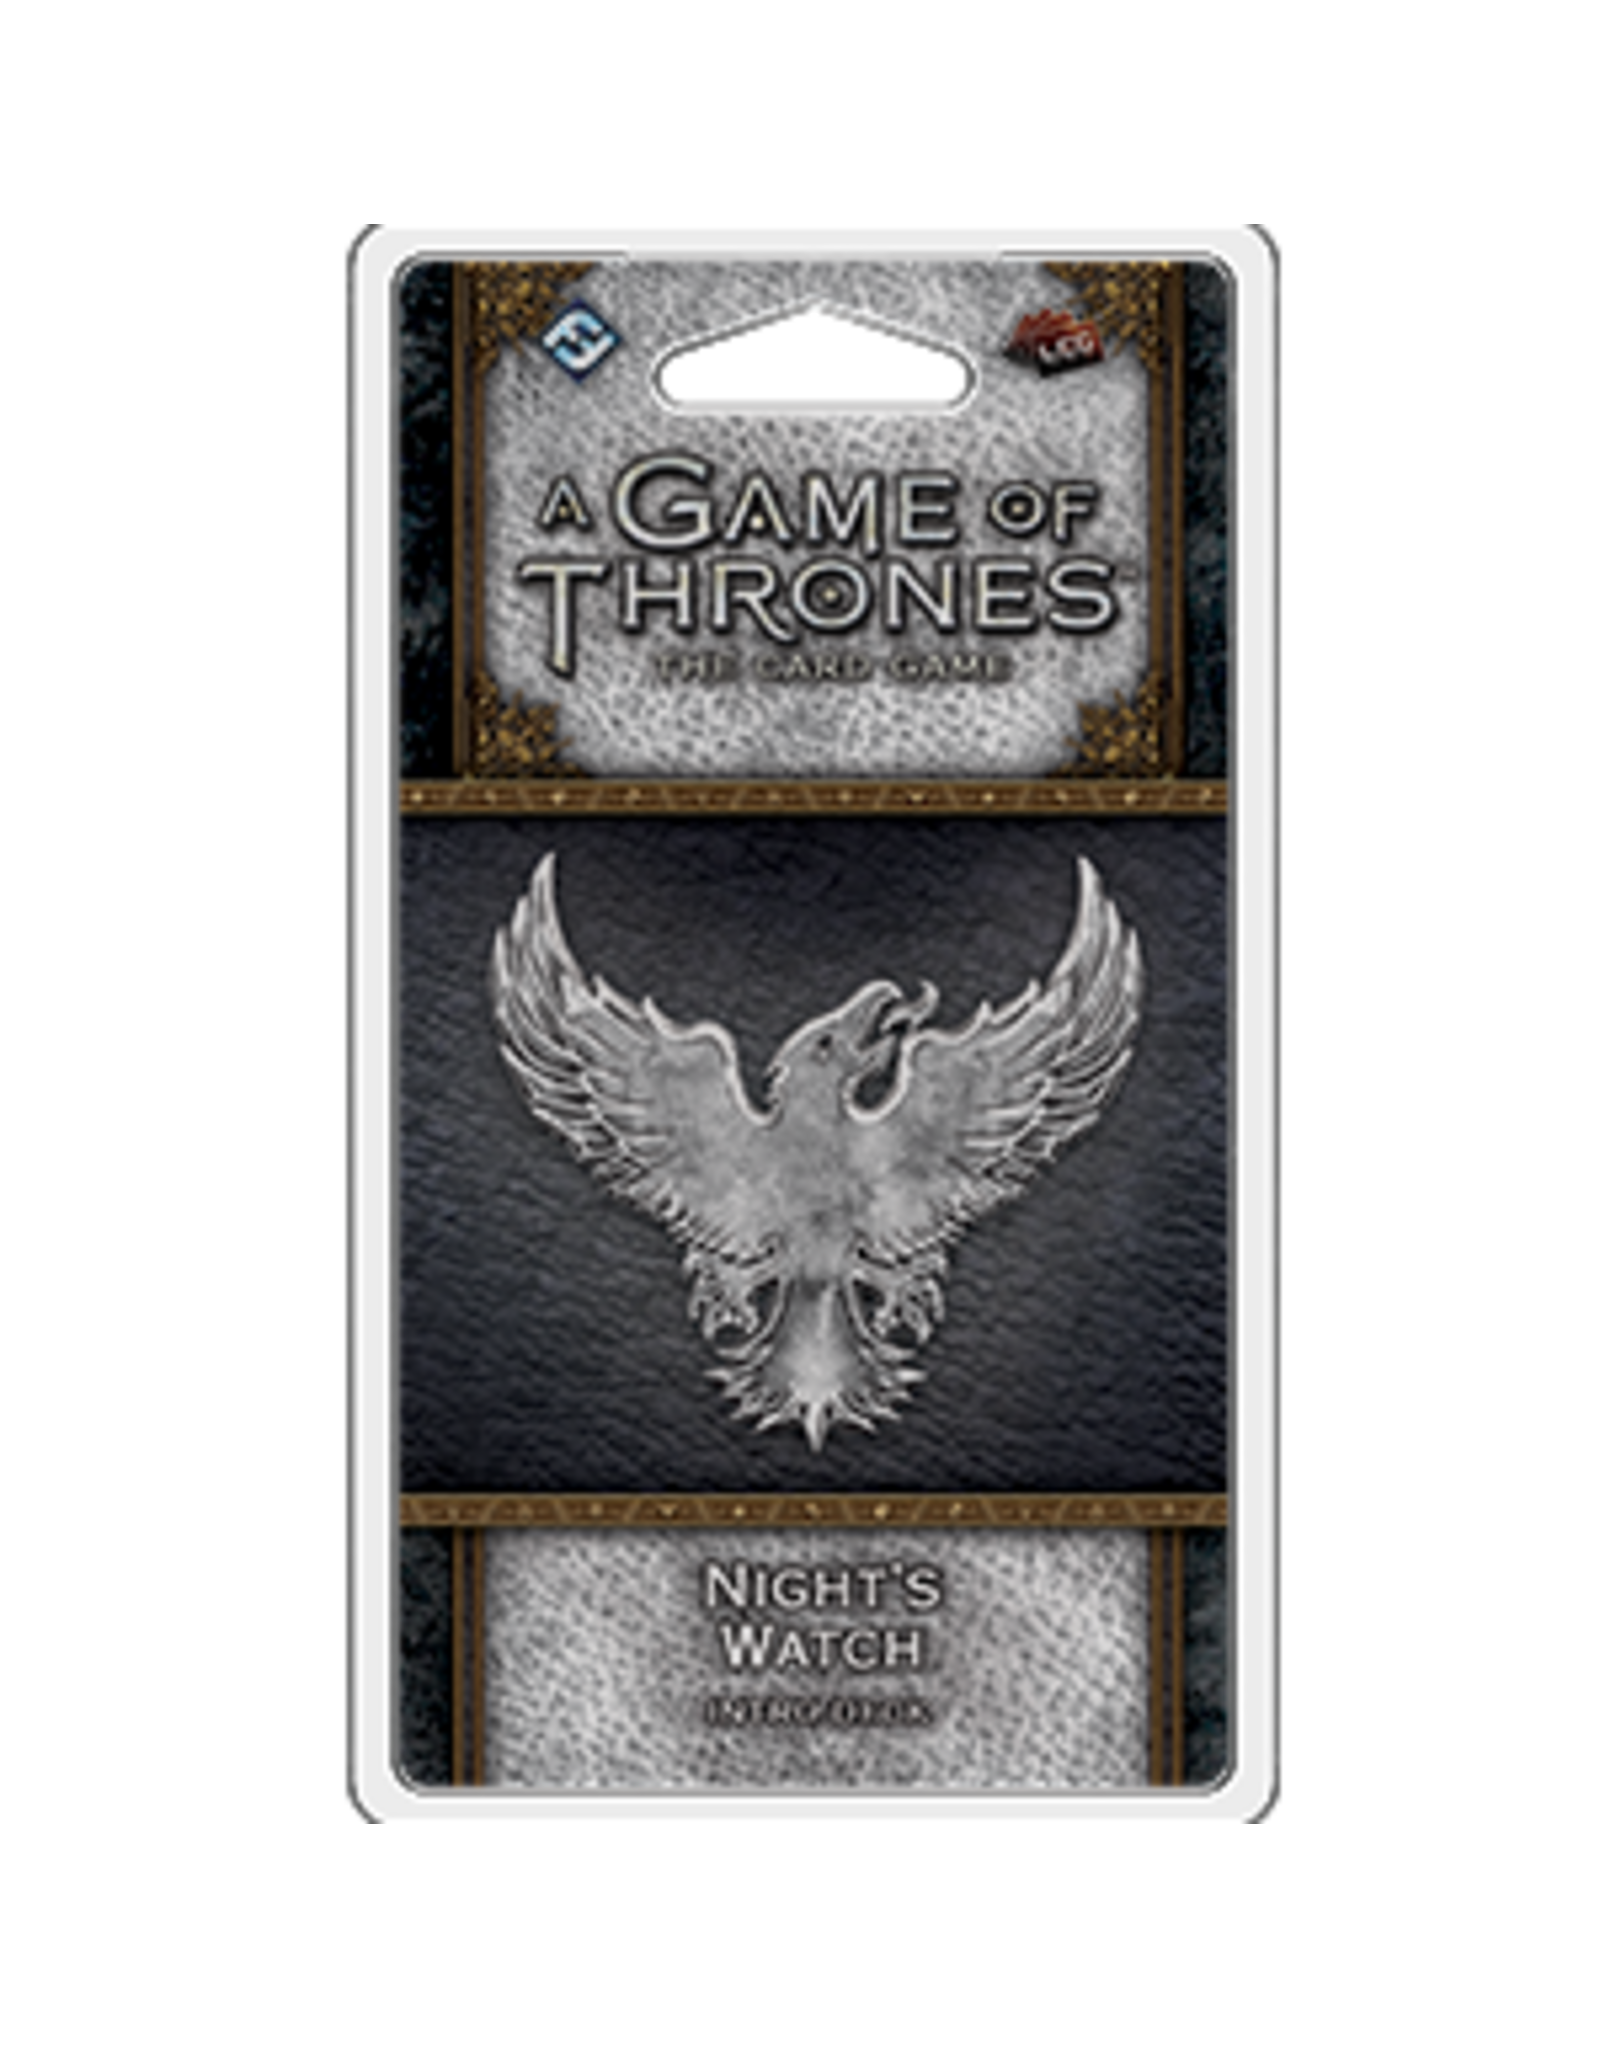 Game of Thrones LCG Night's Watch Intro Deck